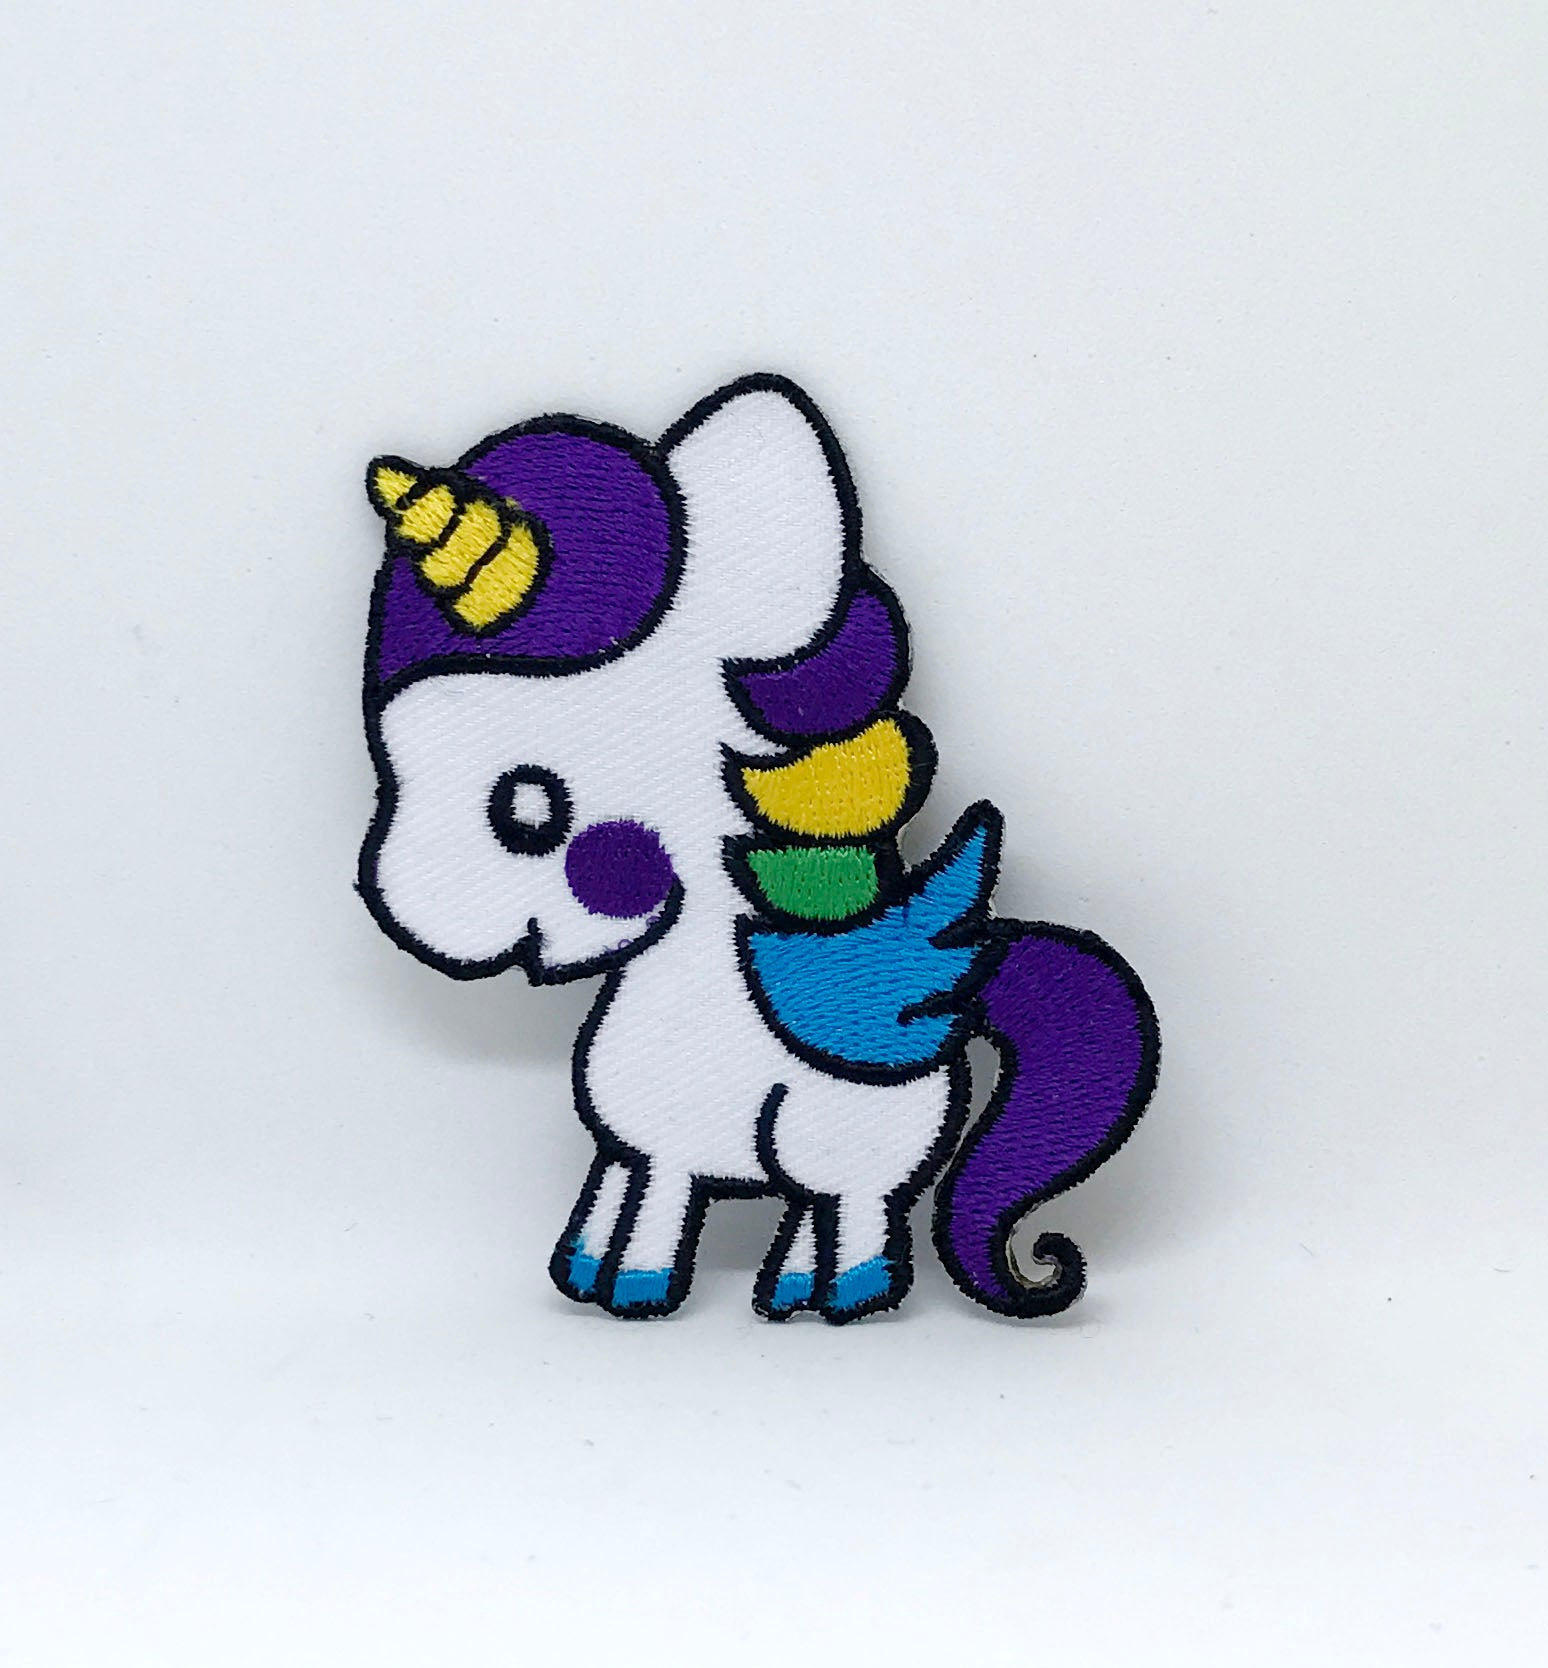 New Cute Unicorn Iron Sew on Embroidered Patches